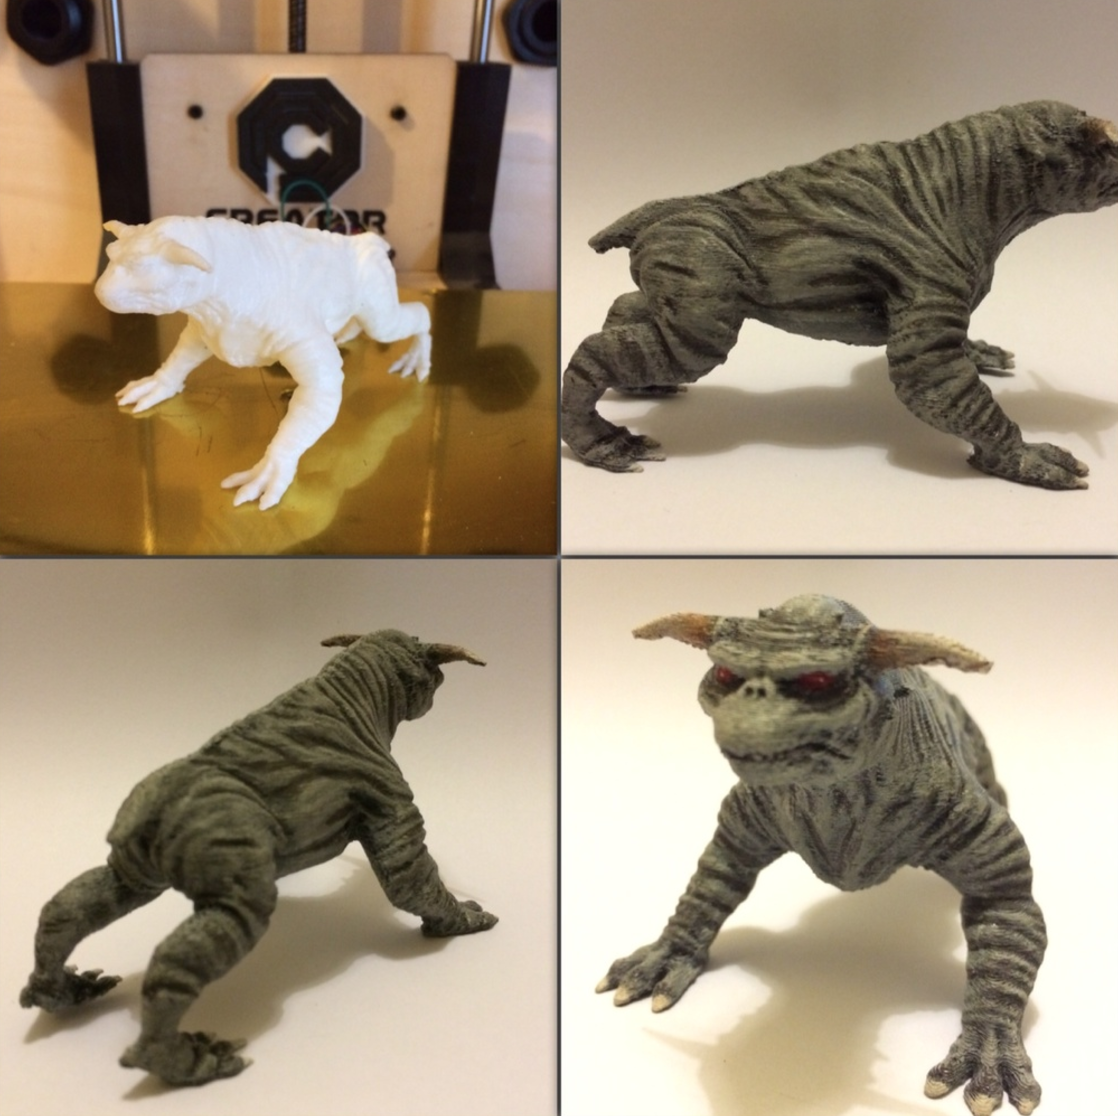 Capture d'écran 2016-12-12 à 17.35.26.png Download free STL file Ghostbusters Terror Dog Re-Sculpted • 3D printable template, Geoffro